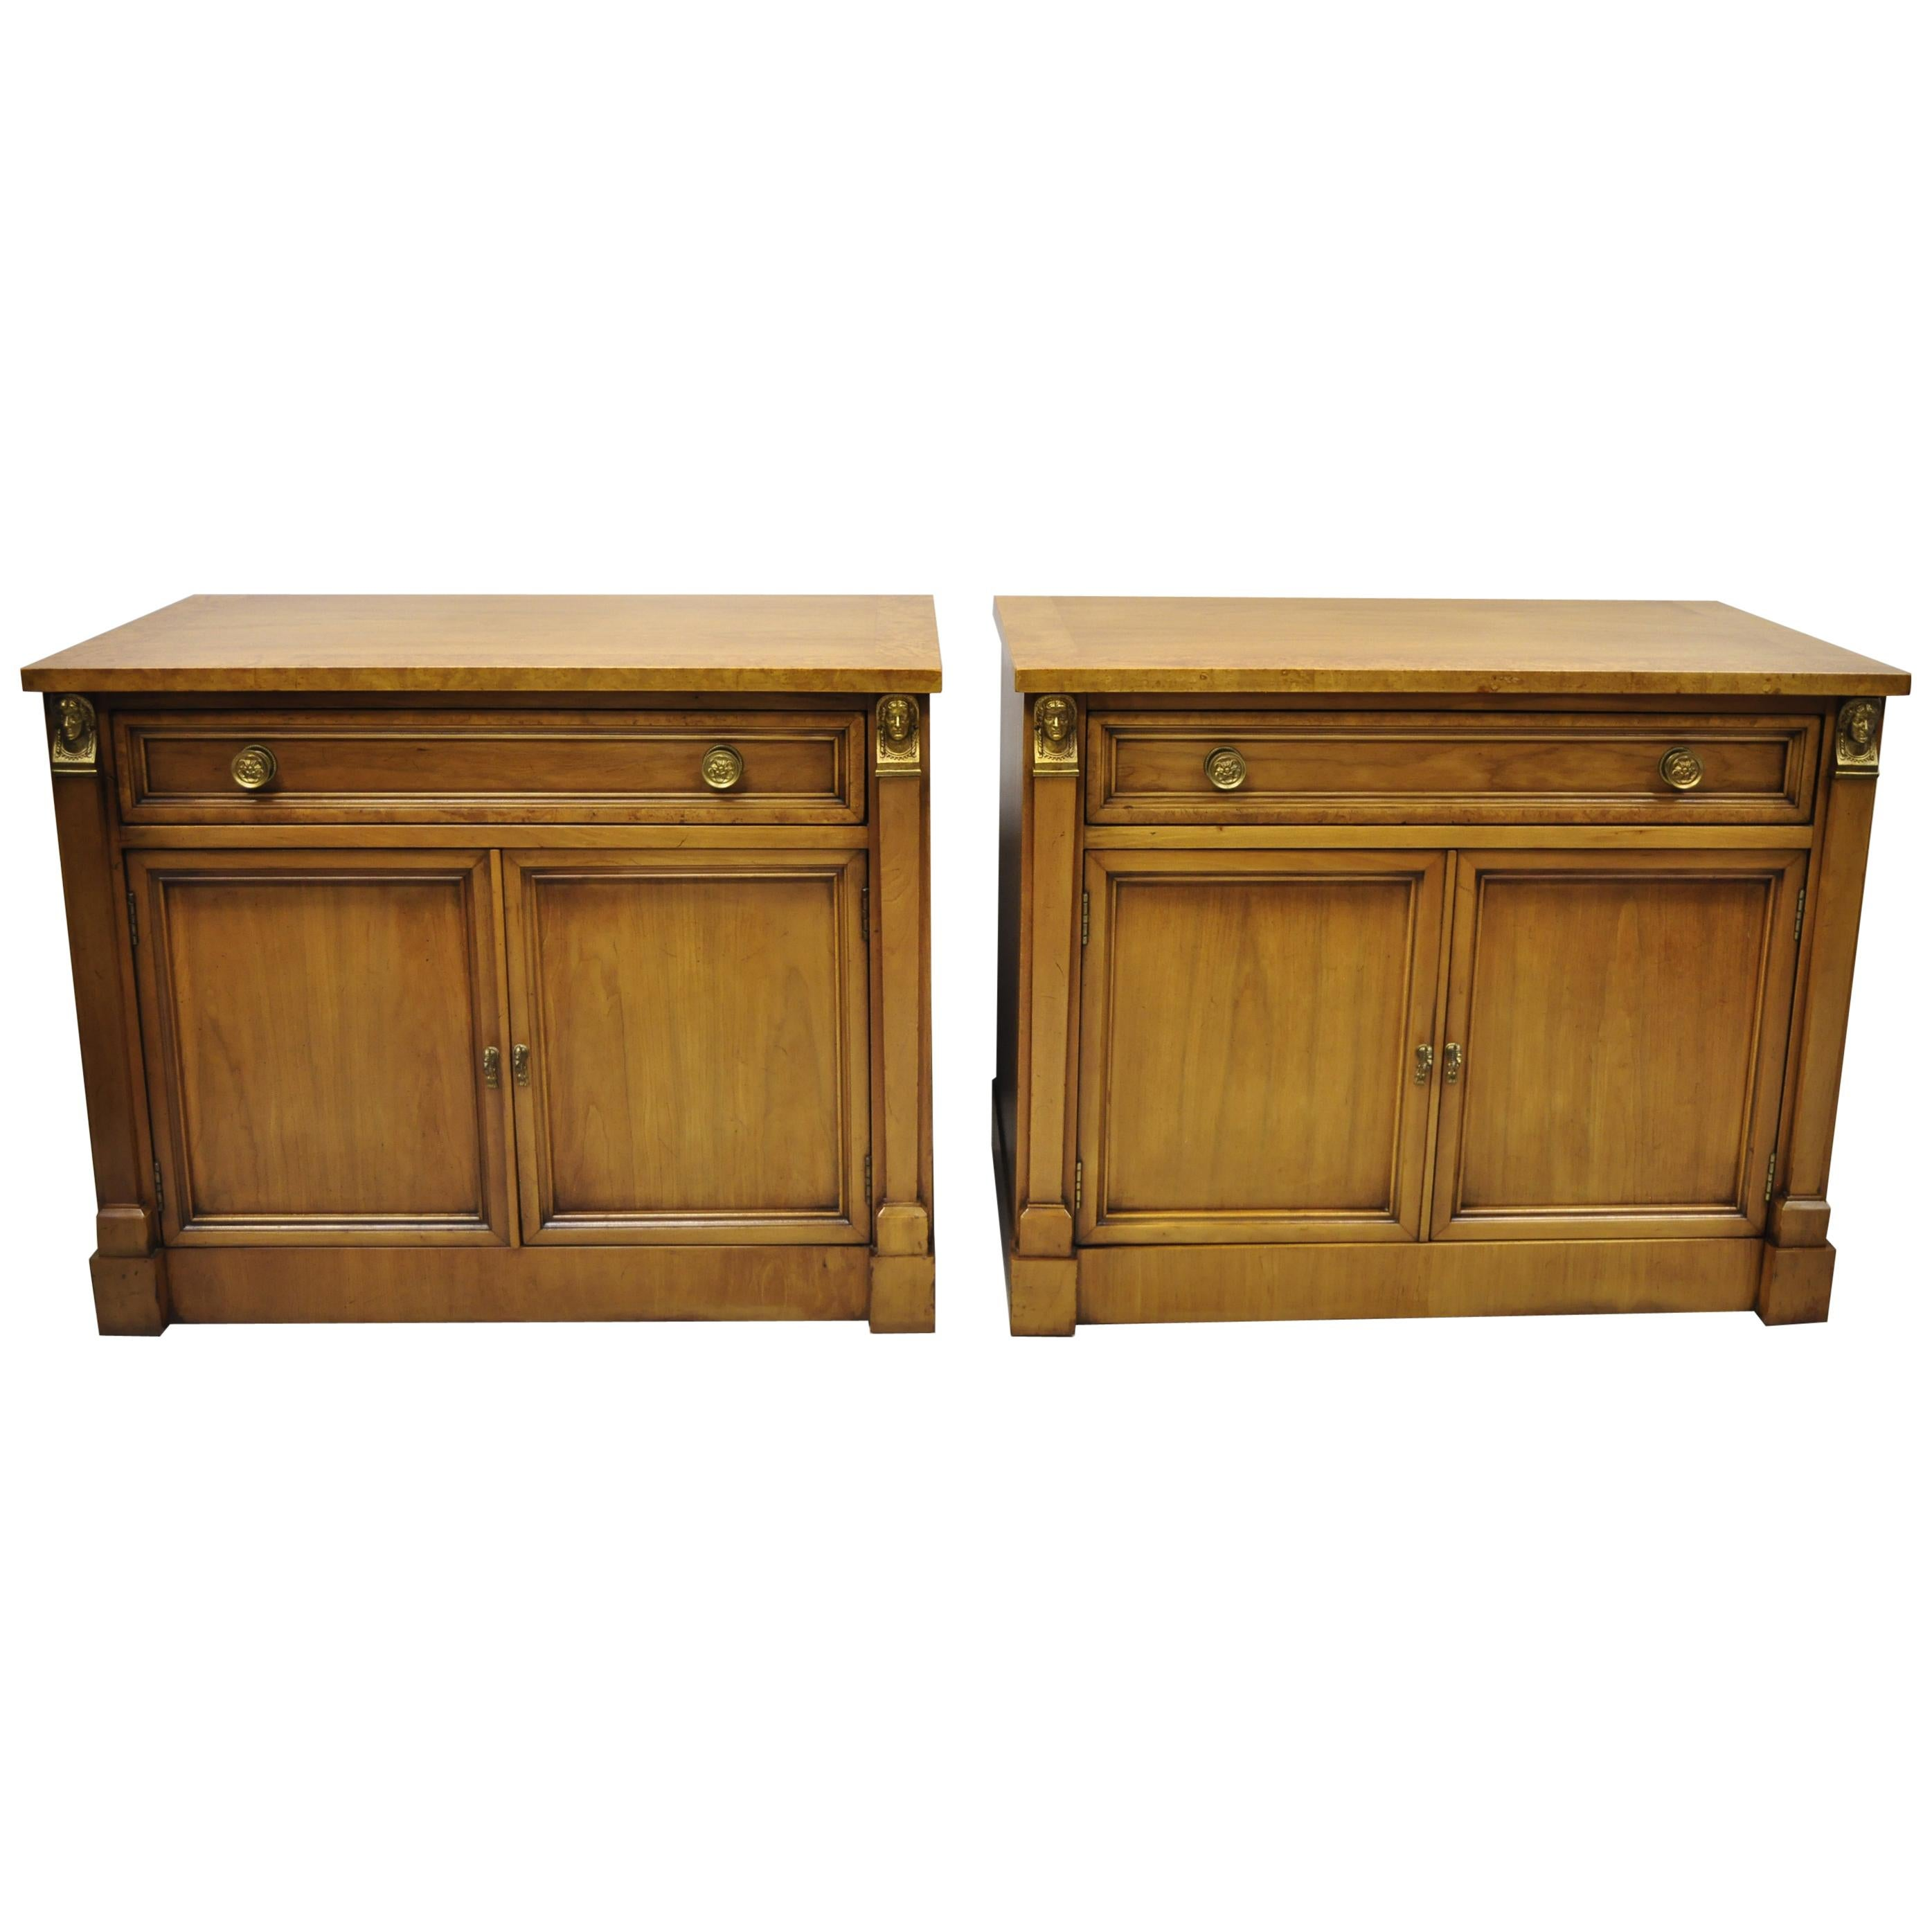 Century French Empire Neoclassical Figural Banded Burl Wood Nightstands, a Pair